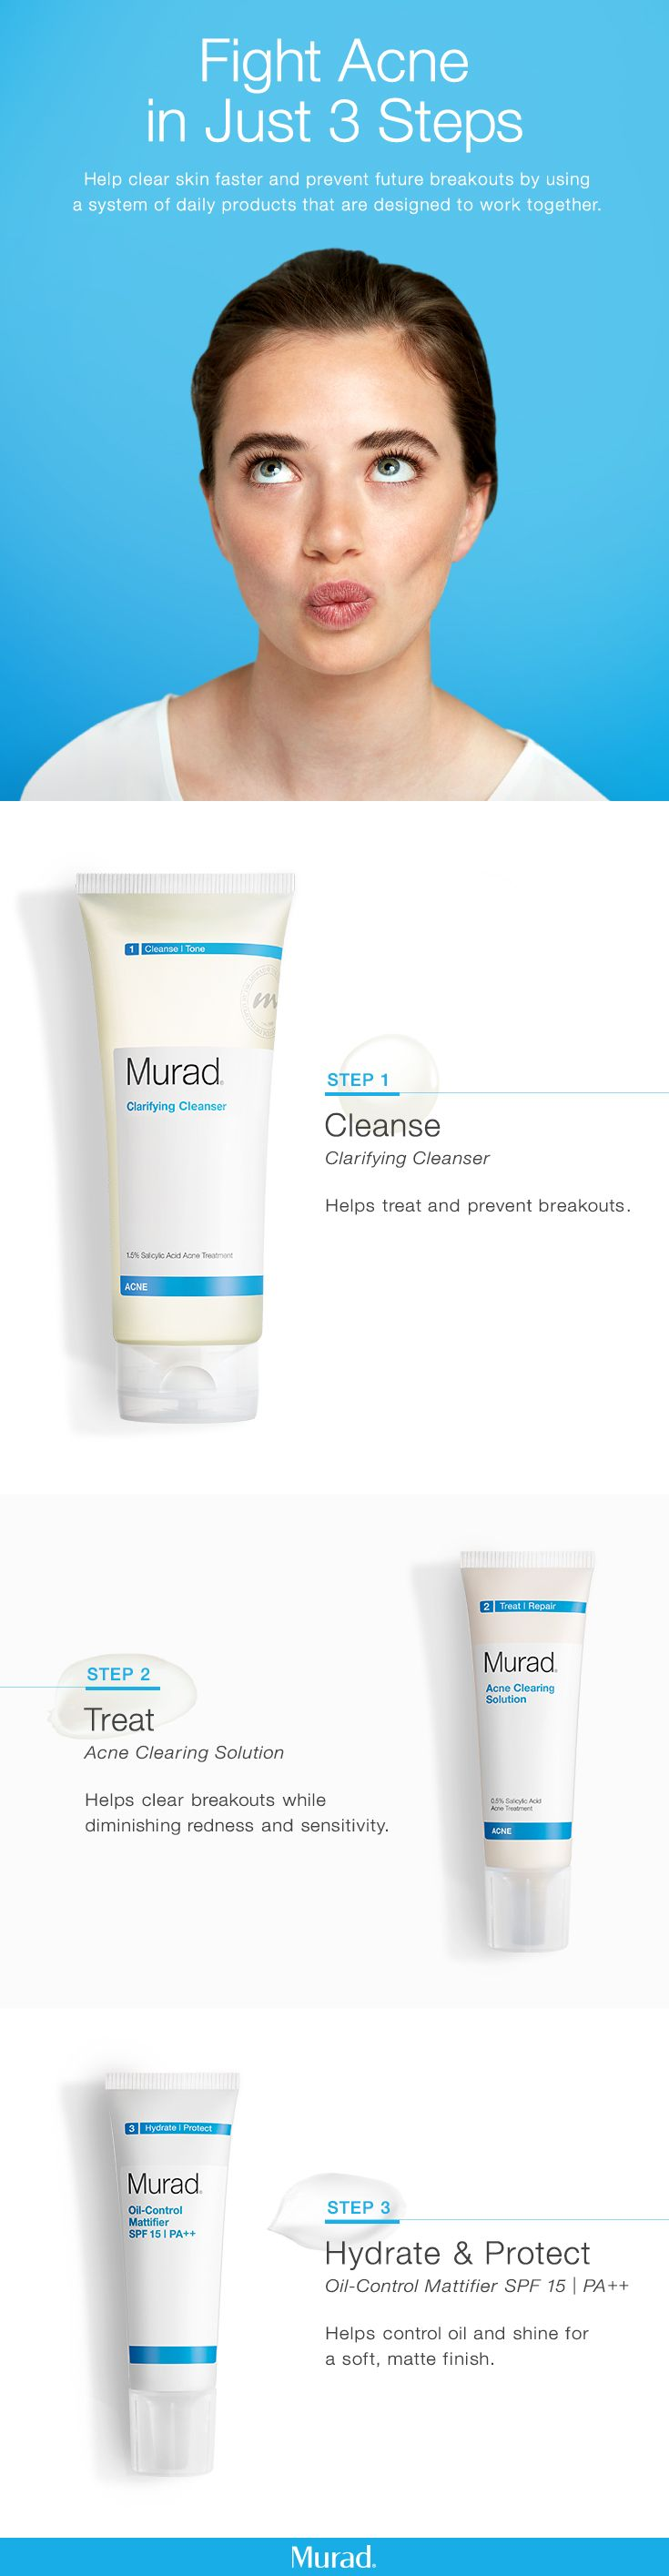 Your acne skincare routine has arrived. Murad's 3 step Acne System restores skin's healthy appearance by targeting breakouts & excess oil with powerful acne medication while soothing redness and irritation. Cleanse your skin with Murad's Clarifying Cleanser to help treat/prevent breakouts. Treat with Murad's Acne Clearing Solution to help clear breakouts while diminishing redness & sensitivity. Hydrate/protect your oily skin with Oil-Control Mattifier SPF 15  for oil control and a matte…